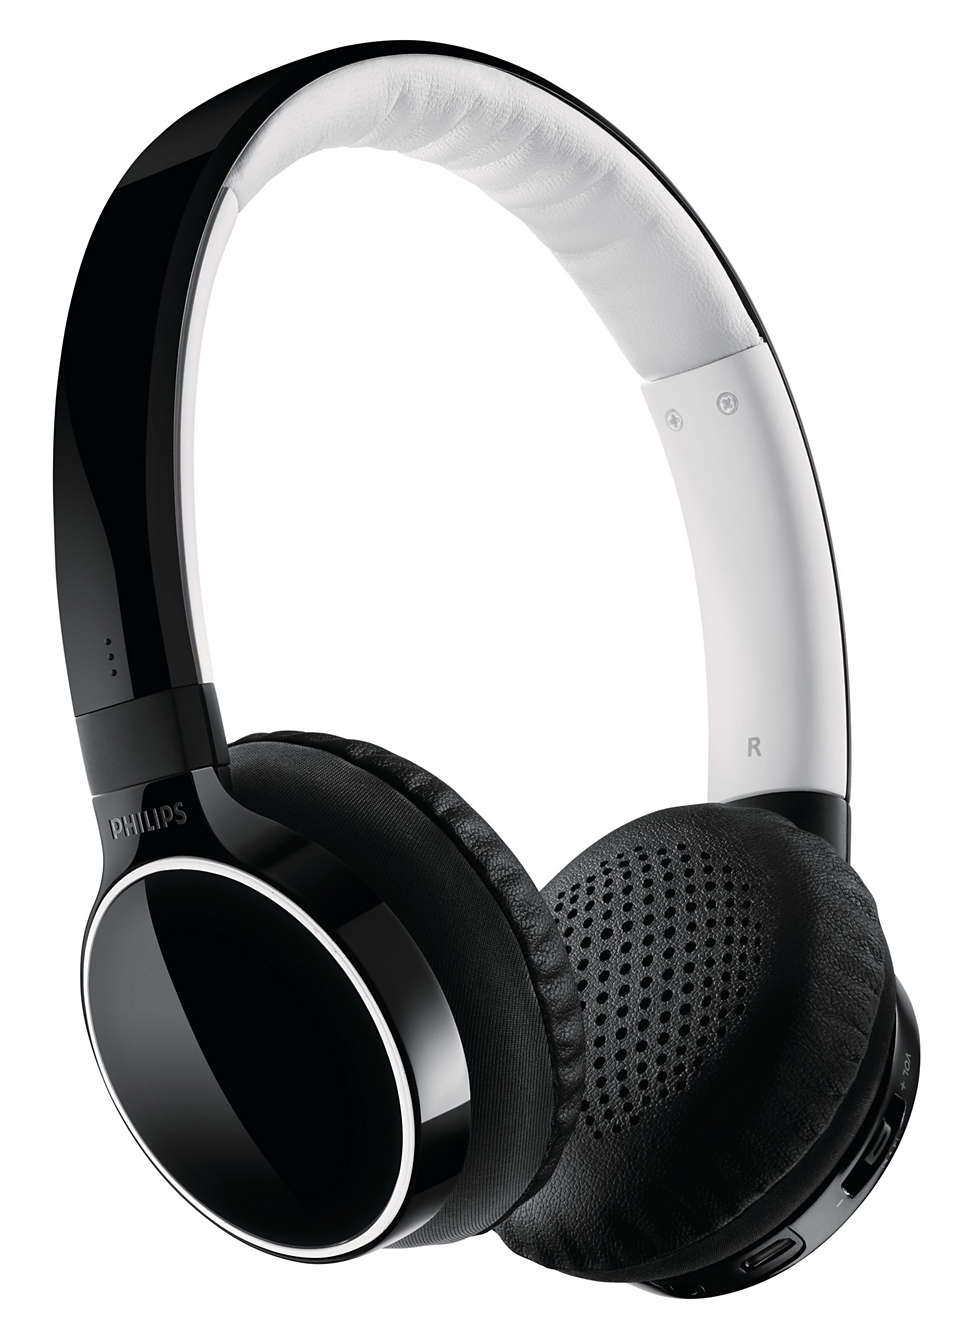 Pure sound, wired or wireless